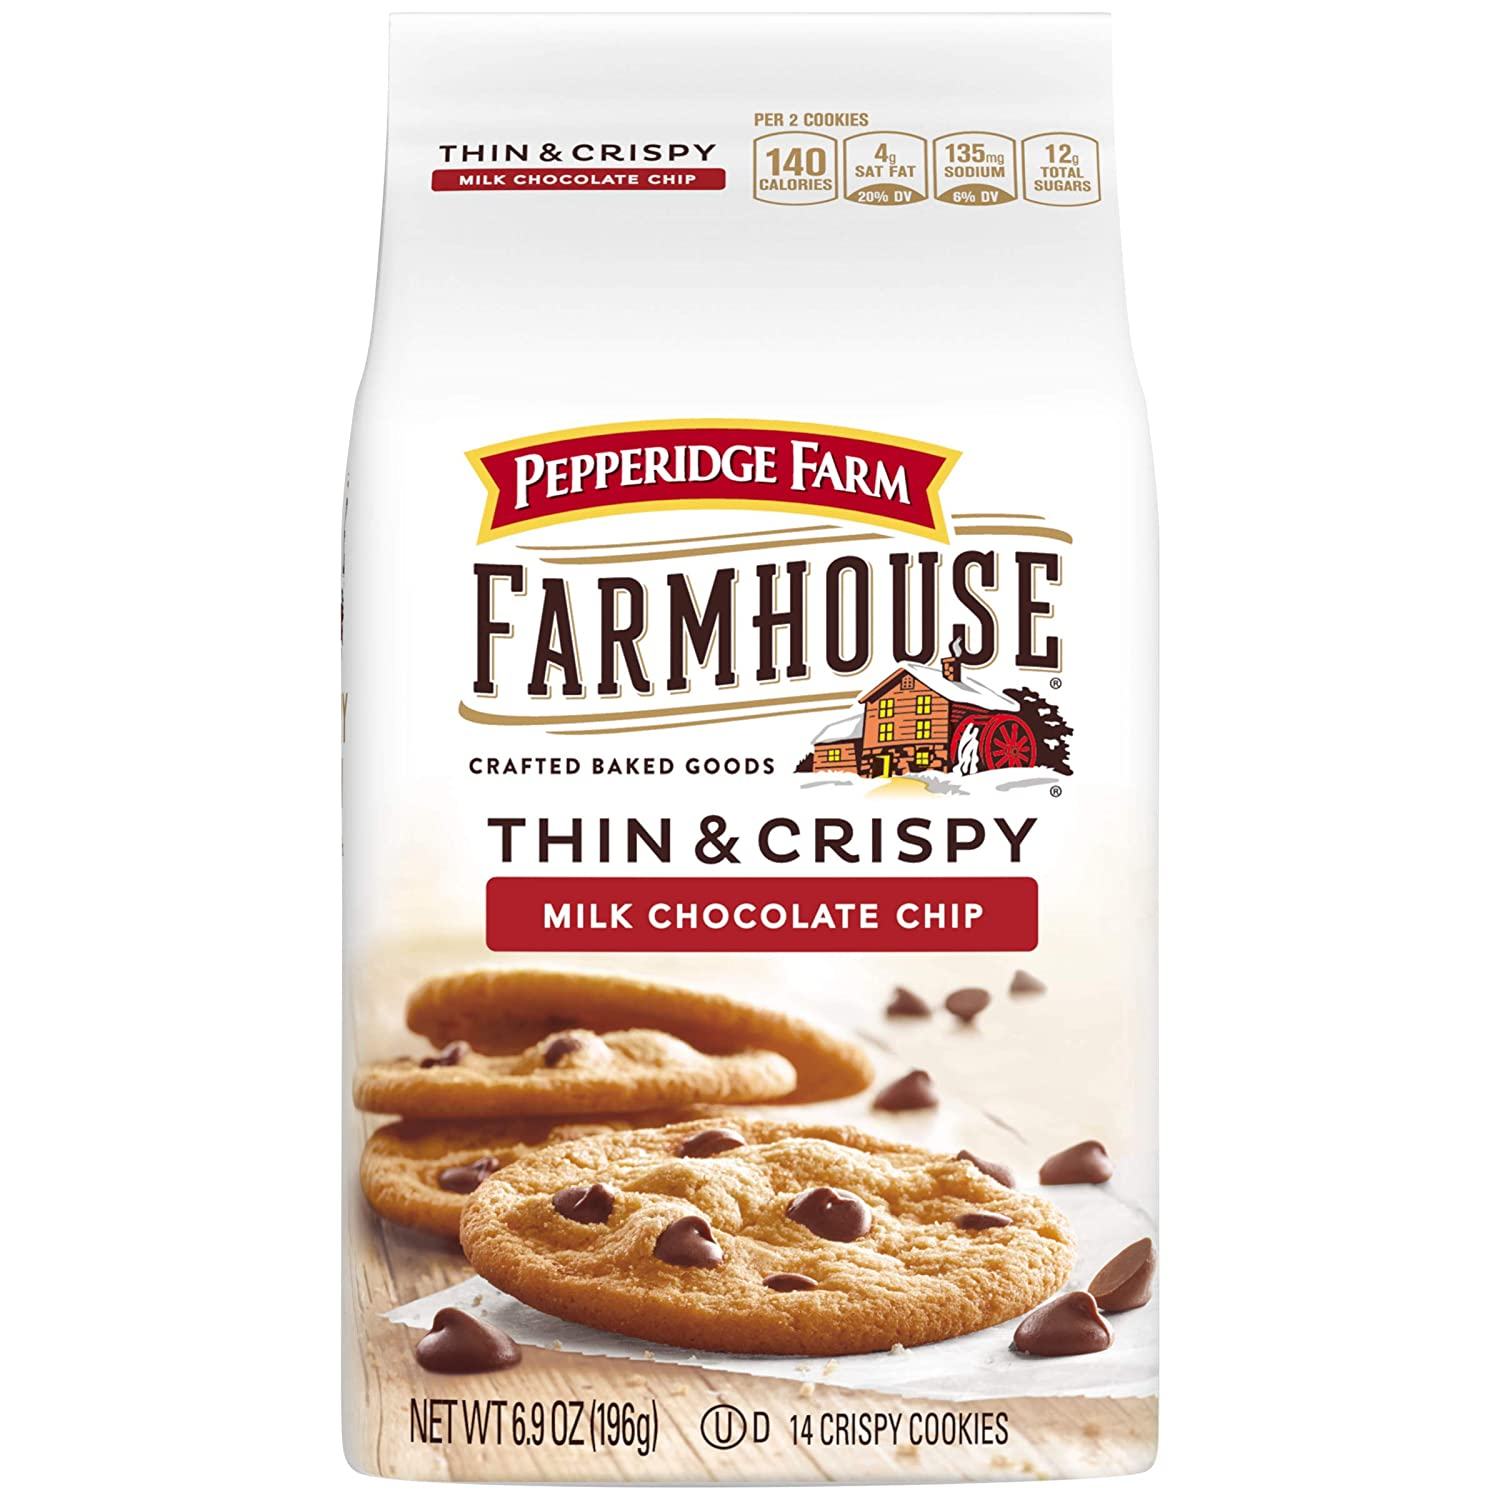 Pepperidge Farm Farmhouse Thin Crispy Milk Chocolate Chip Cookies 6 9 Oz Bag Amazon Com Grocery Gourmet Food